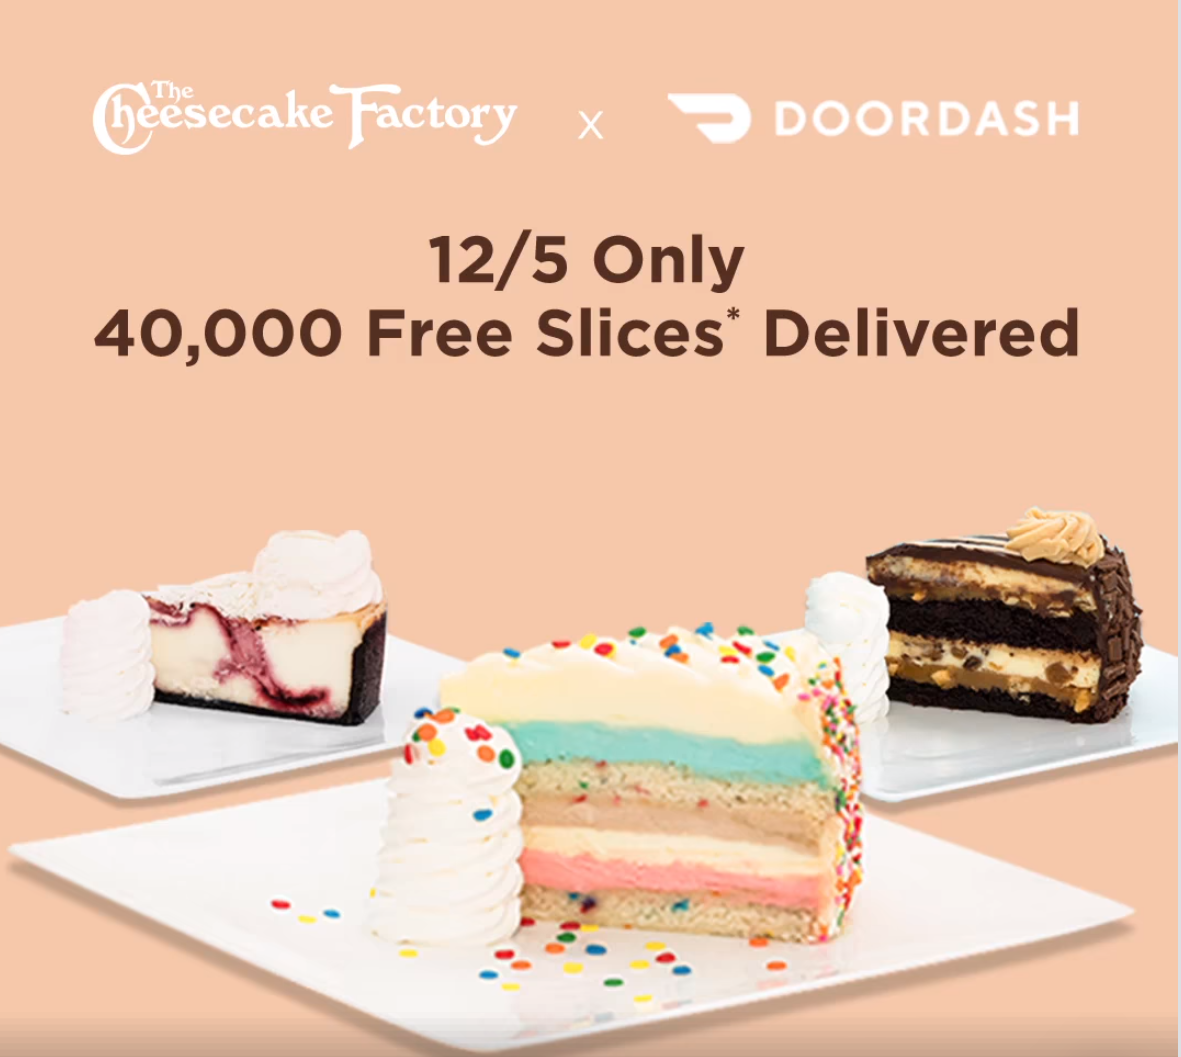 Cheesecake Factory: 40,000 FREE Slices Delivered (12/5 ONLY)